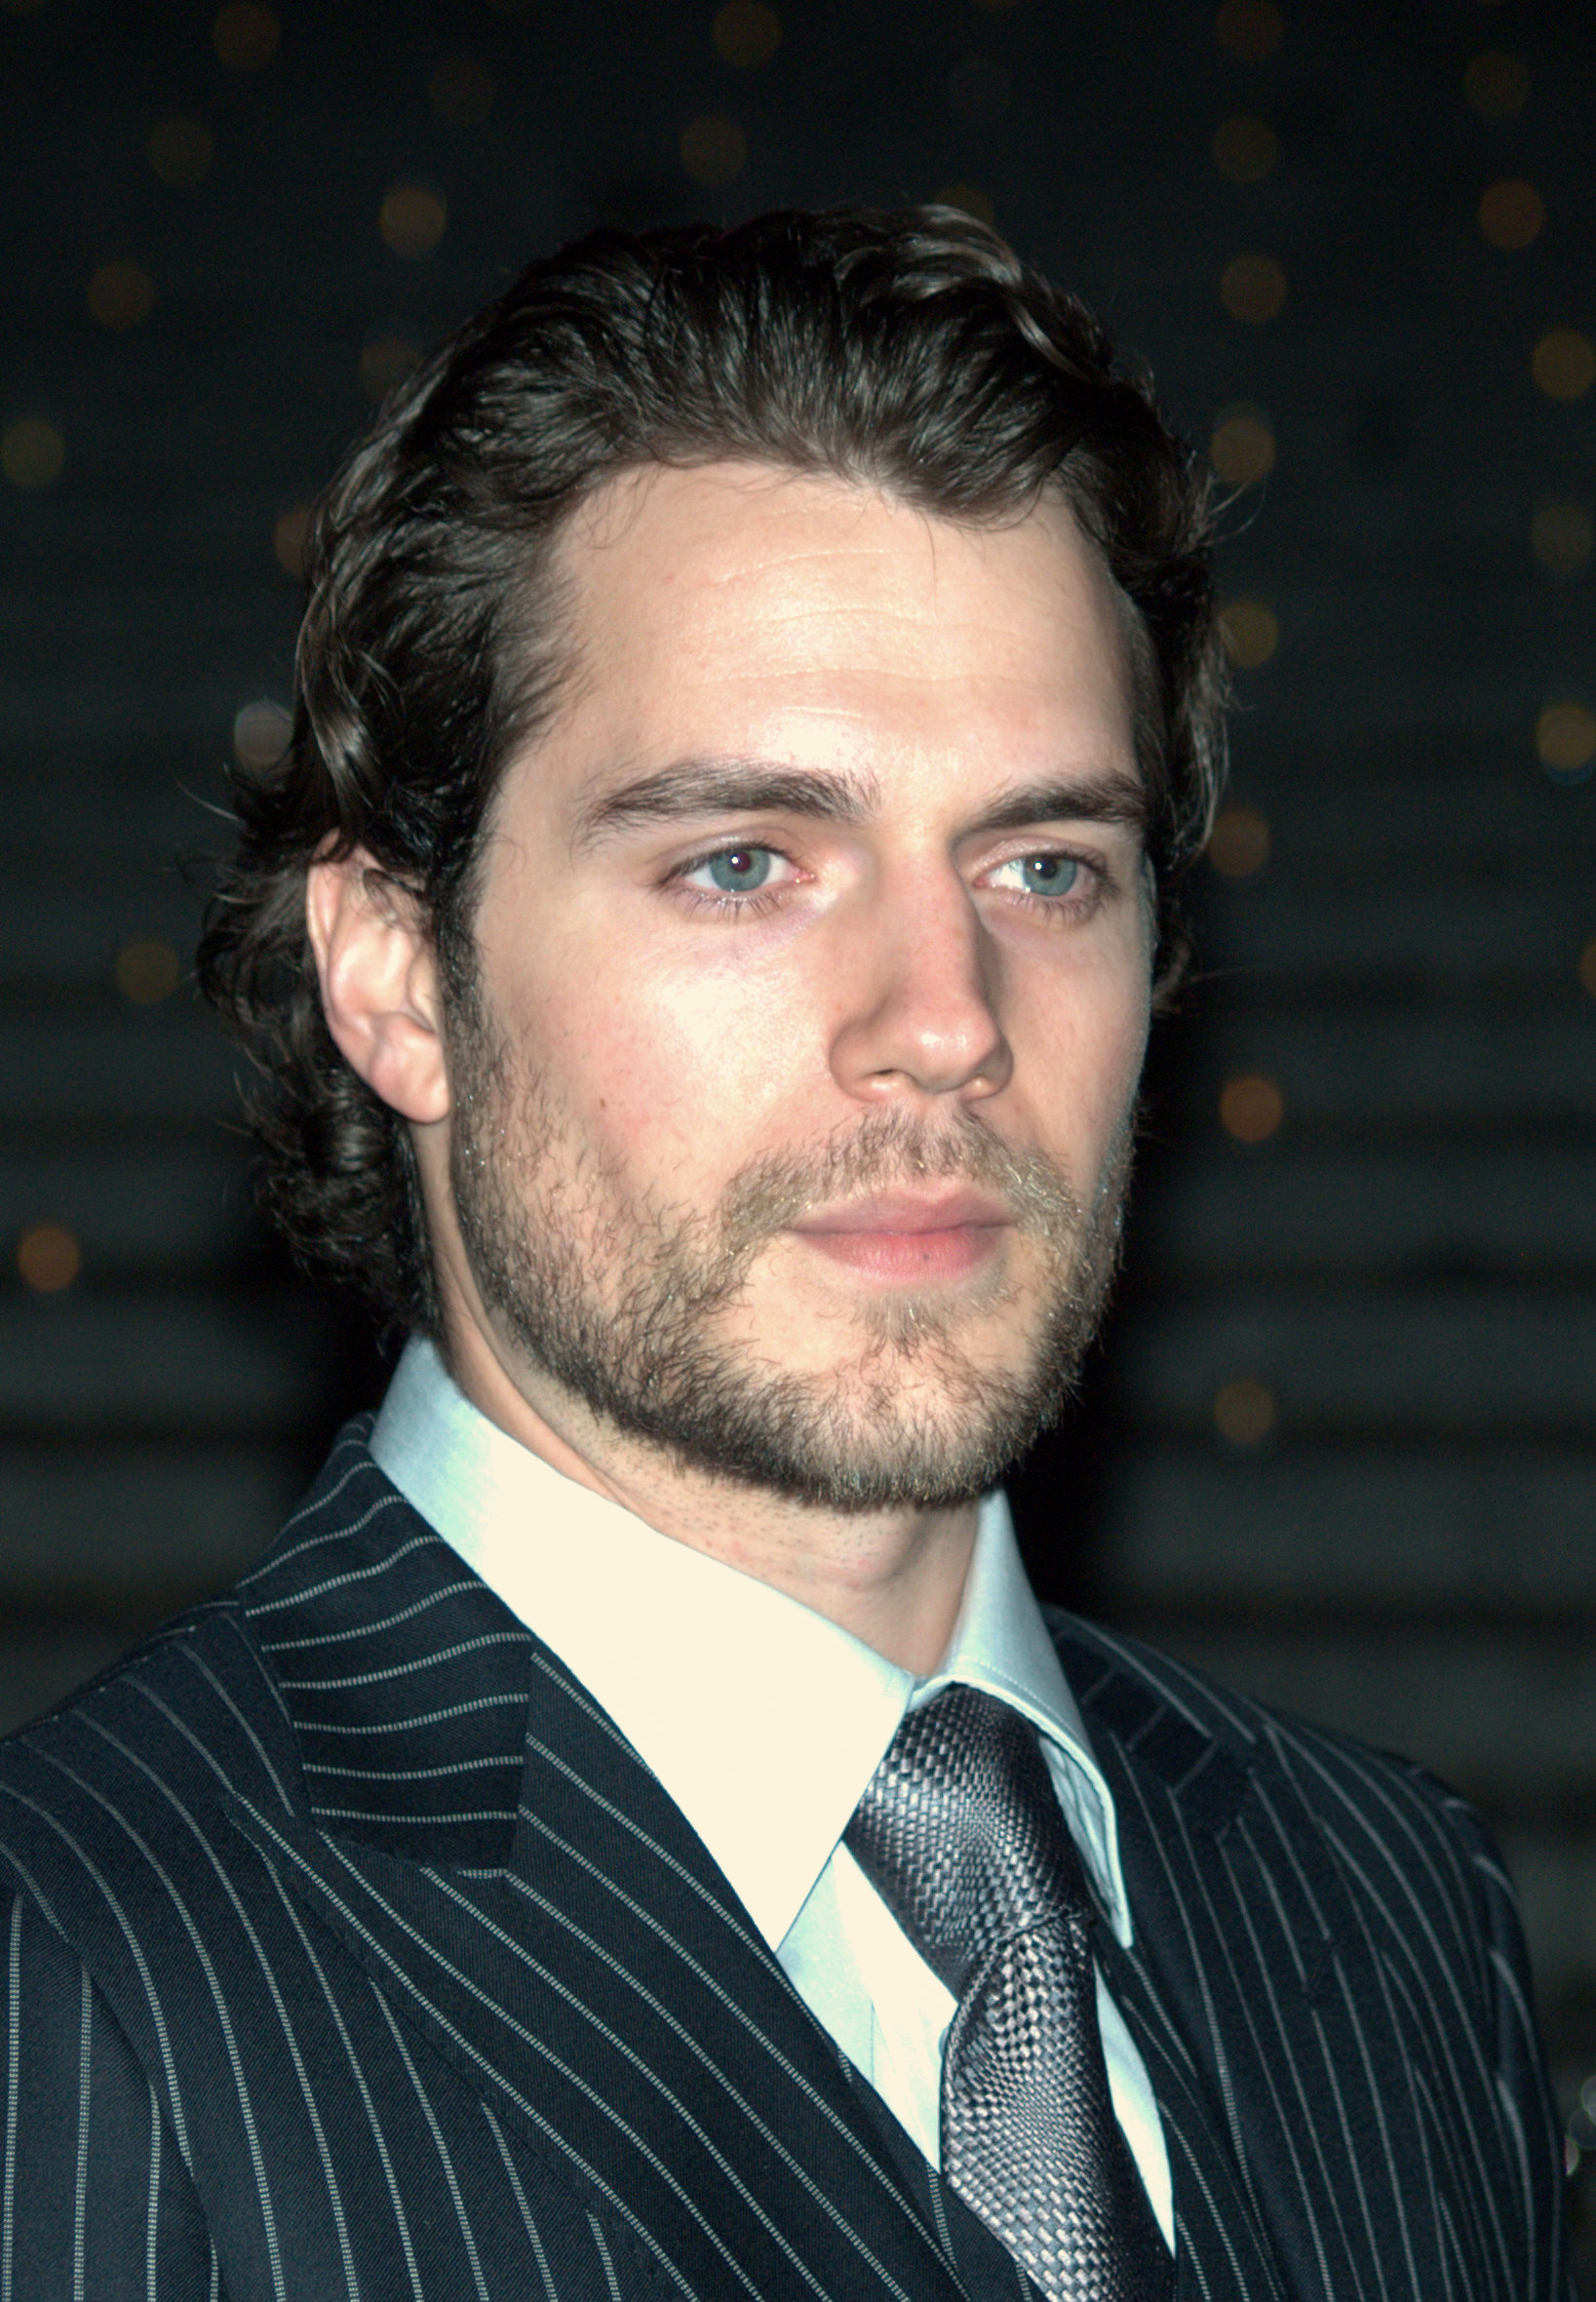 File Henry Cavill At The 2009 Tribeca Film Festival 2 Jpg